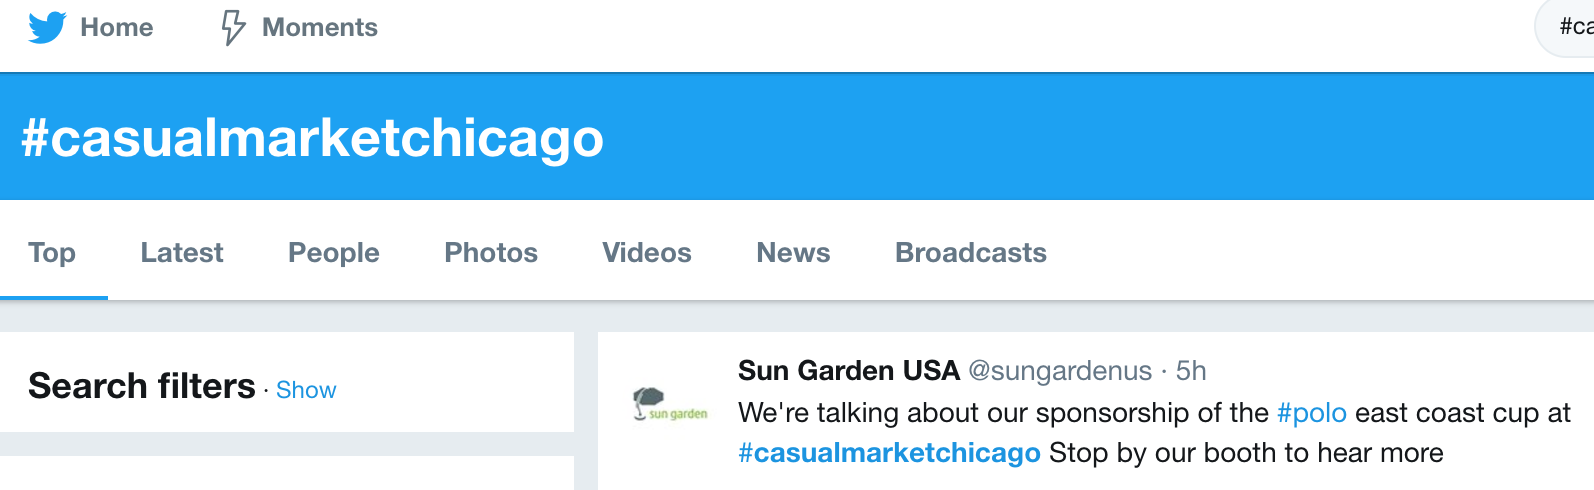 casualmarketchicago.png